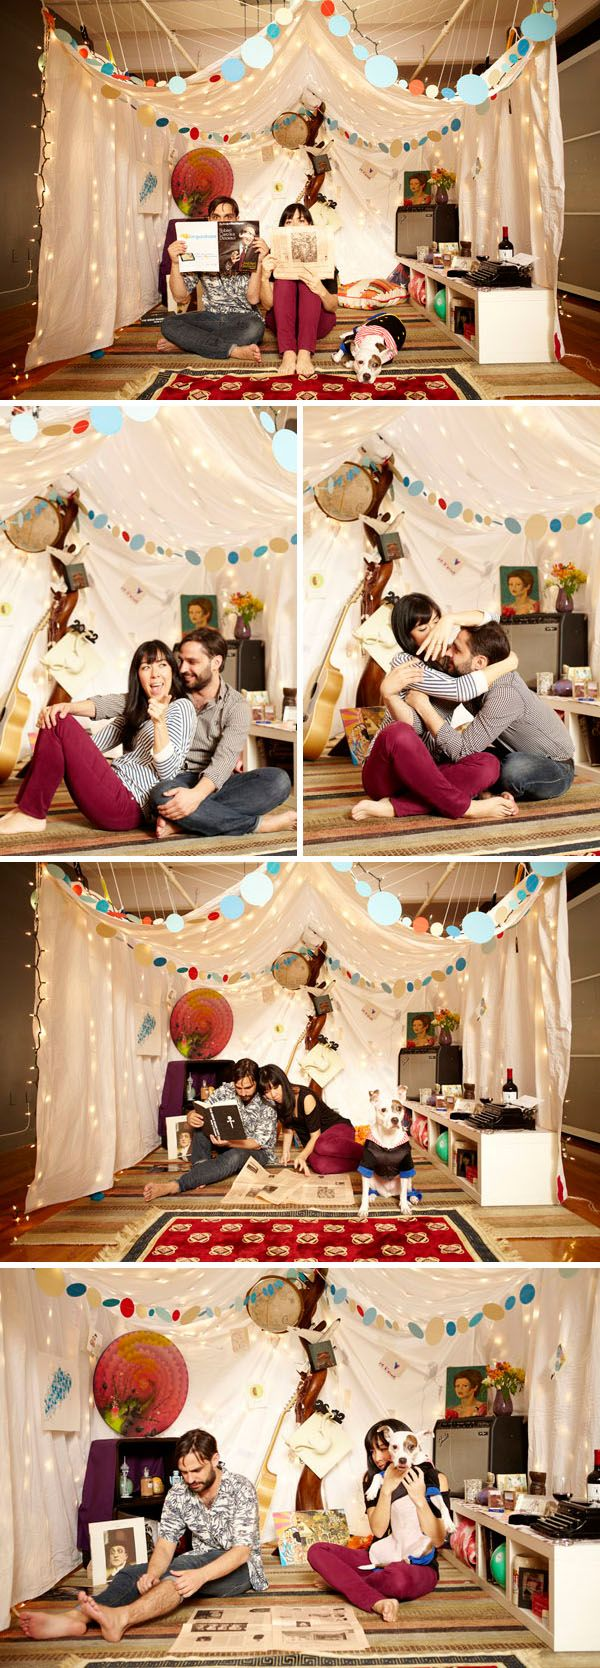 Ok, I know it's not really a gift but how cute would it be to surprise your boyfriend with an good old fort with some more grown up stuff inside it...